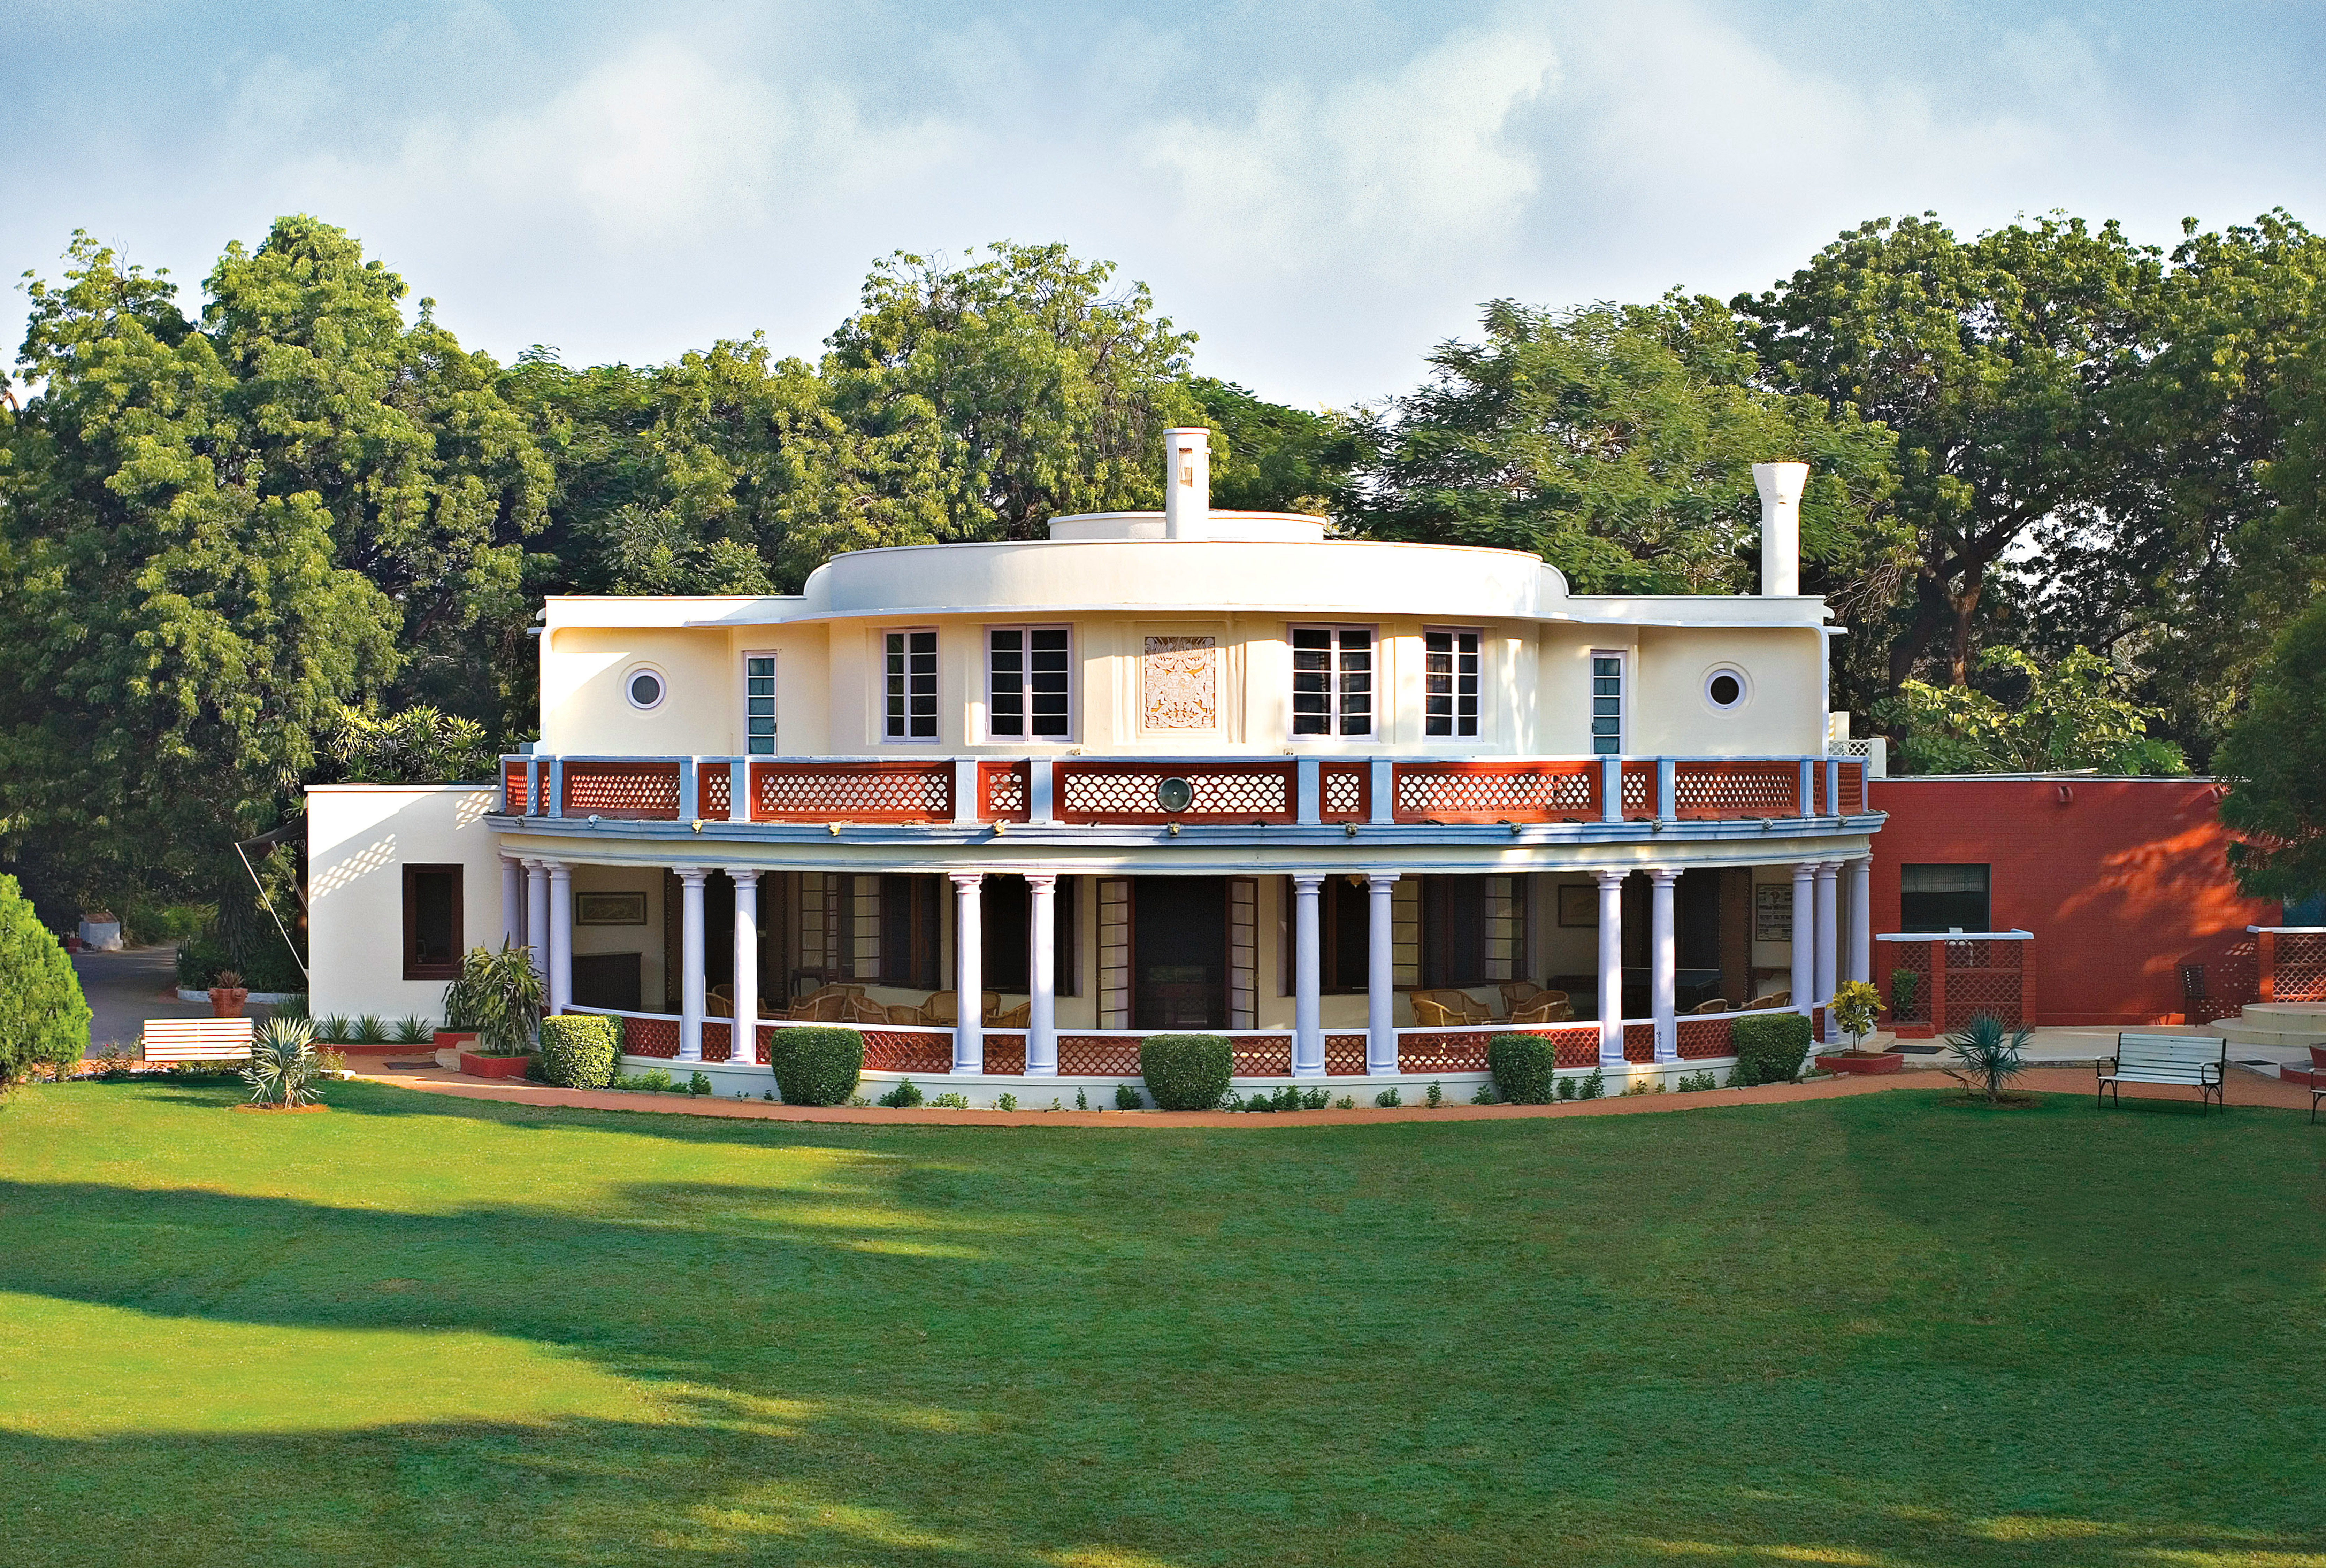 Architecture Buildings Exterior Lodge Luxury grass tree sky house property building home residential area green mansion Villa lawn cottage grassy lush